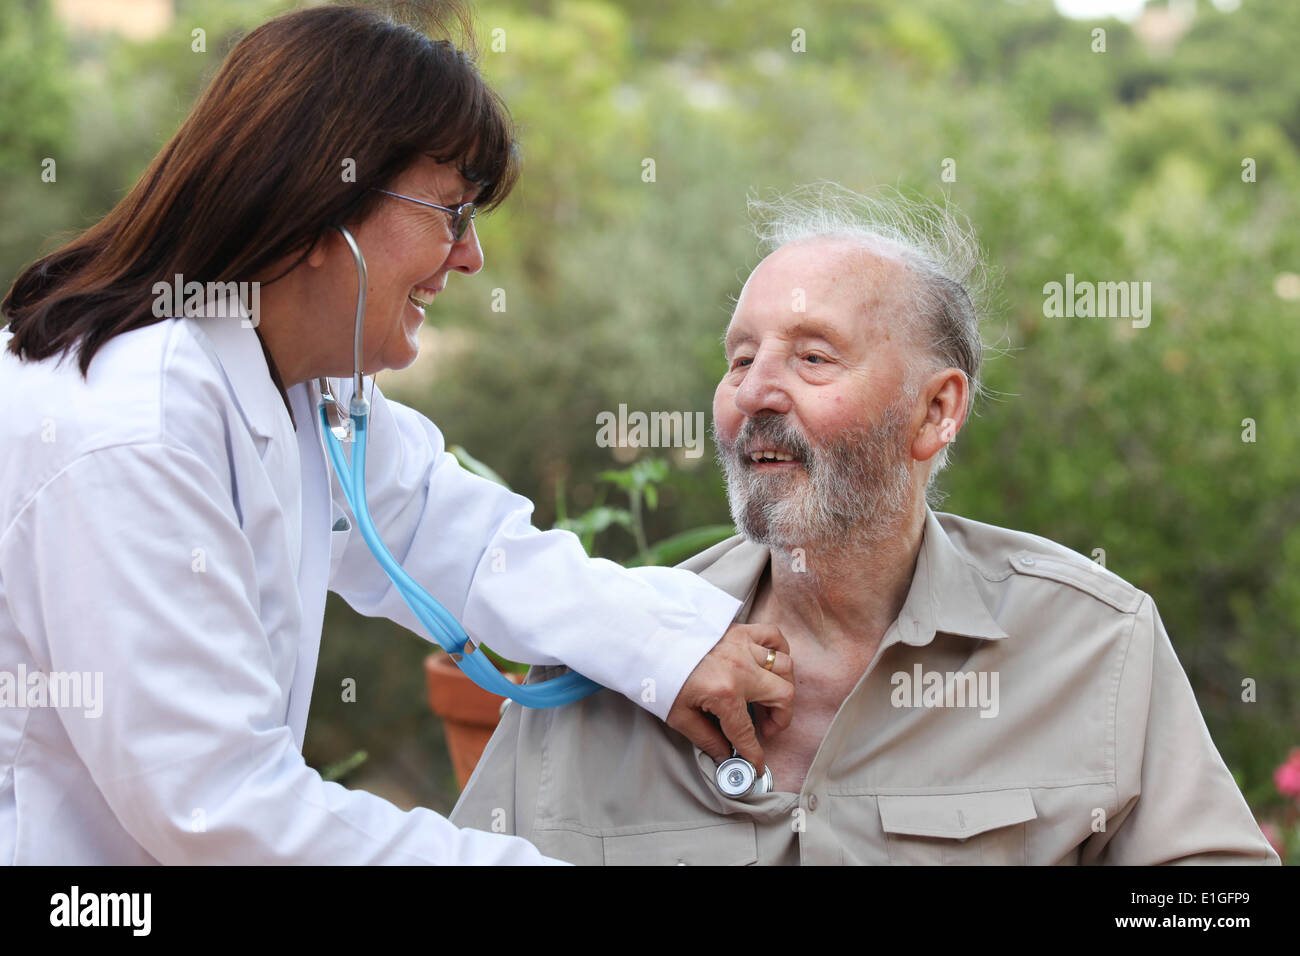 dr with stethoscope checking senior patients heart beat - Stock Image